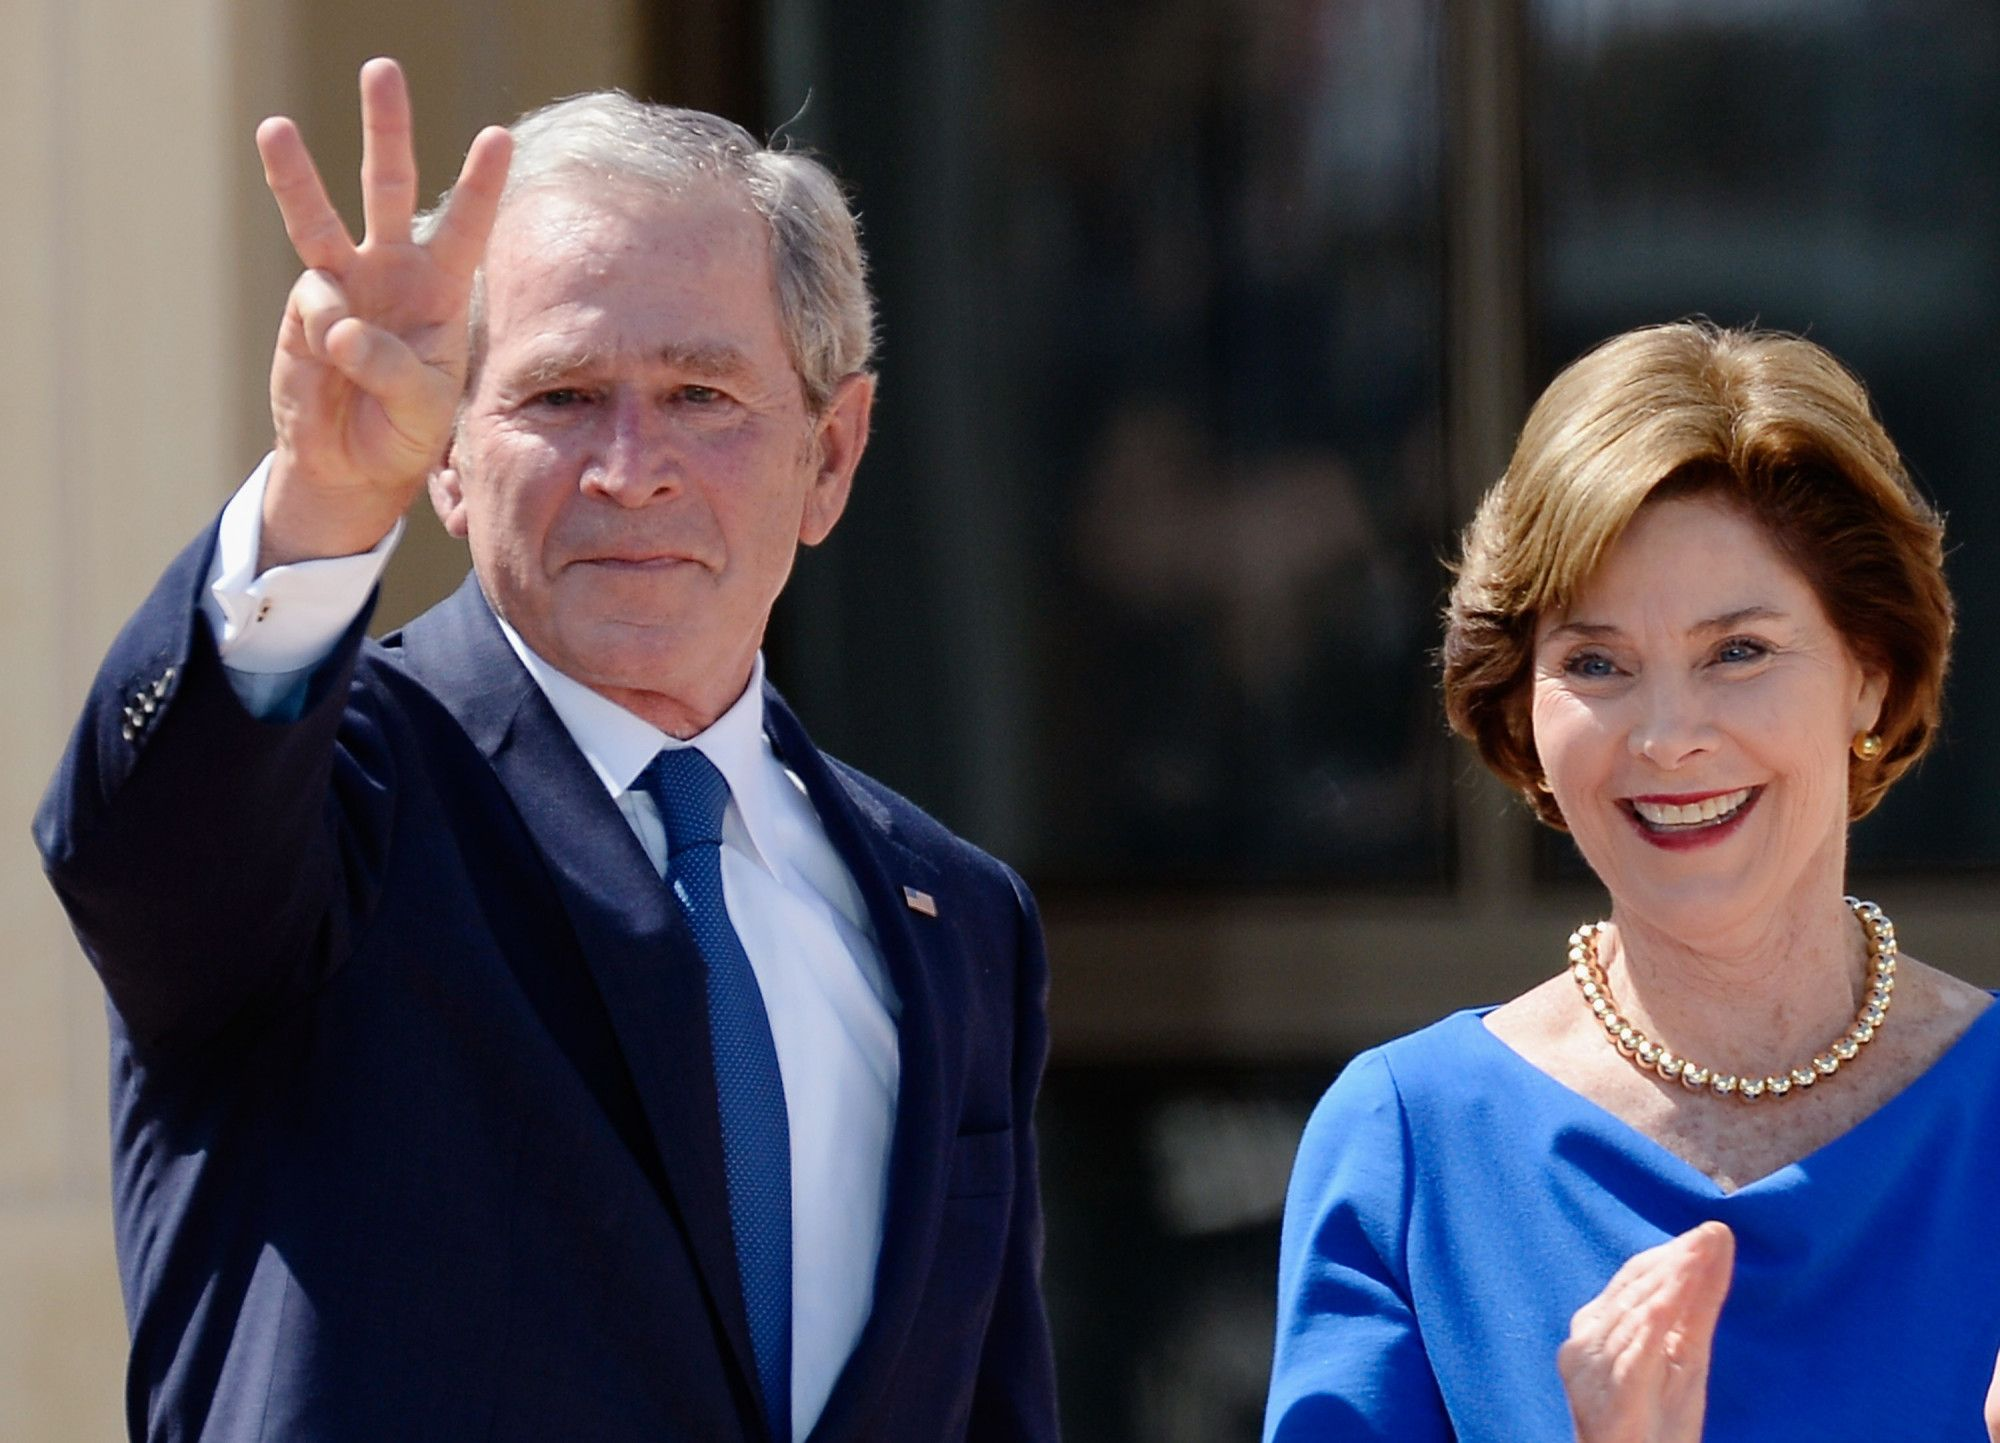 George W. Bush Becomes First President To Do Ice Bucket Challenge - 103.7 KVIL